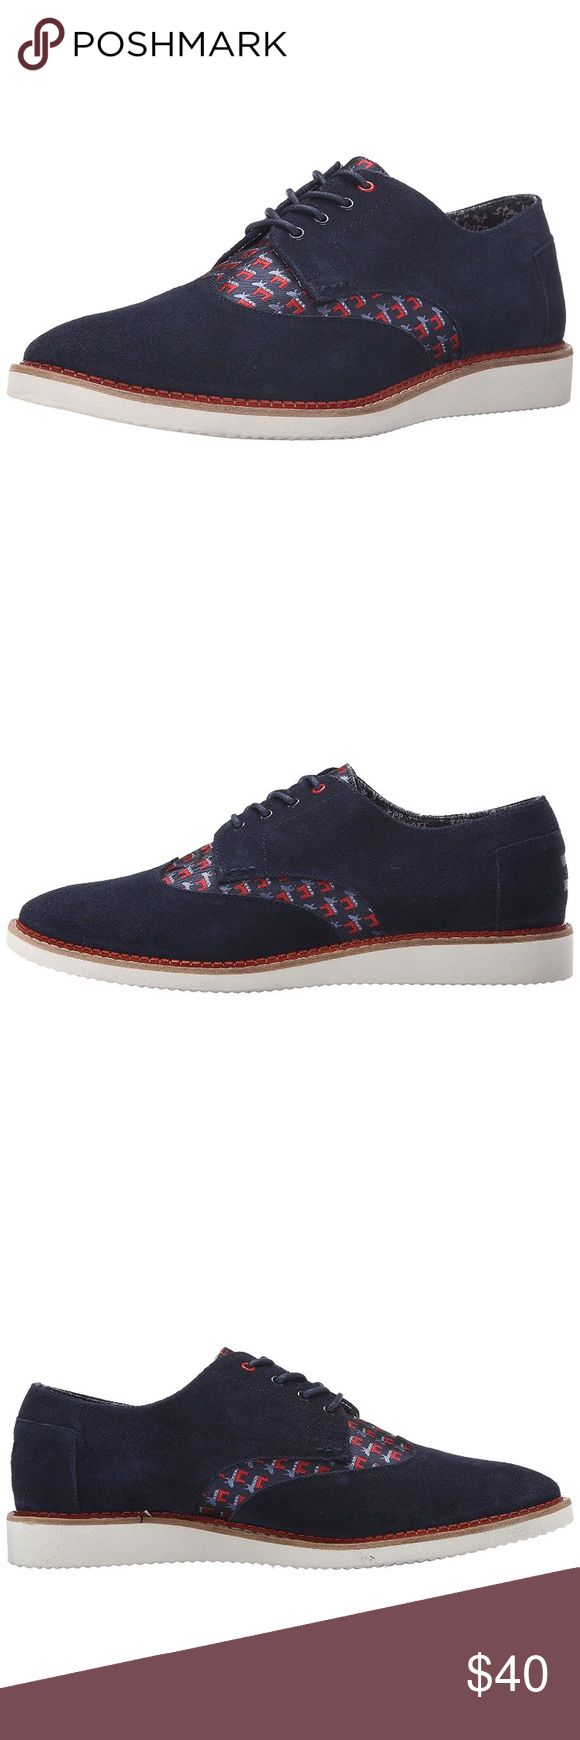 """TOMS Men's Brogue Shoes Navy Amazing condition, only worn once. Subtle """"Democrat Donkey""""print on shoe. Make an offer! TOMS Shoes Oxfords & Derbys"""